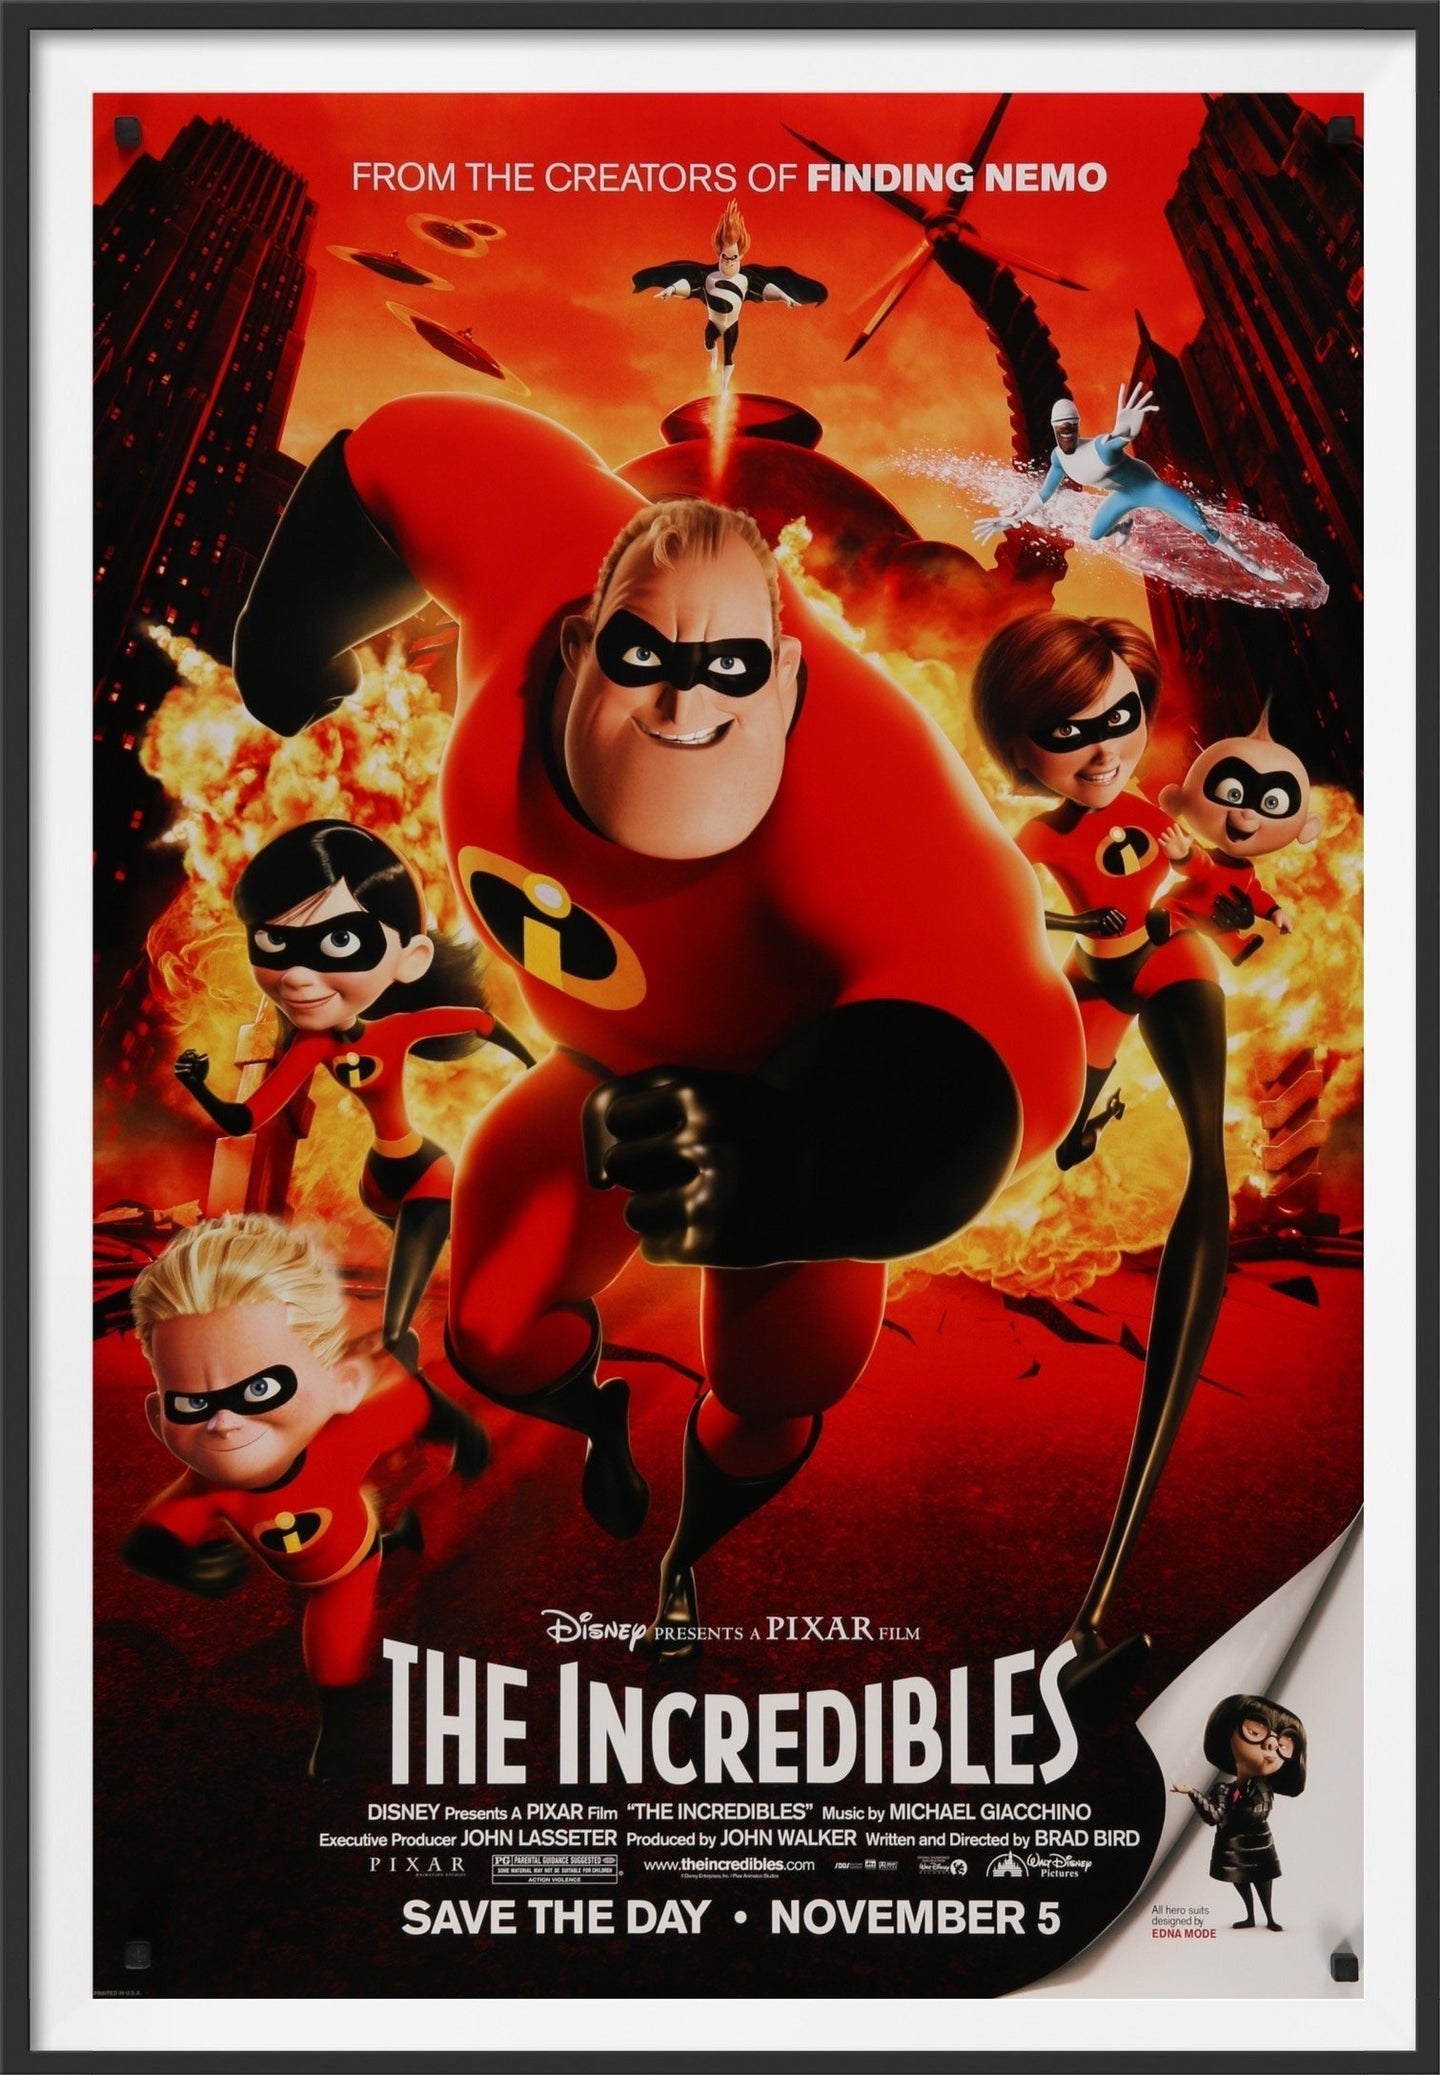 An original movie poster for the Disney / Pixar film The Incredibles